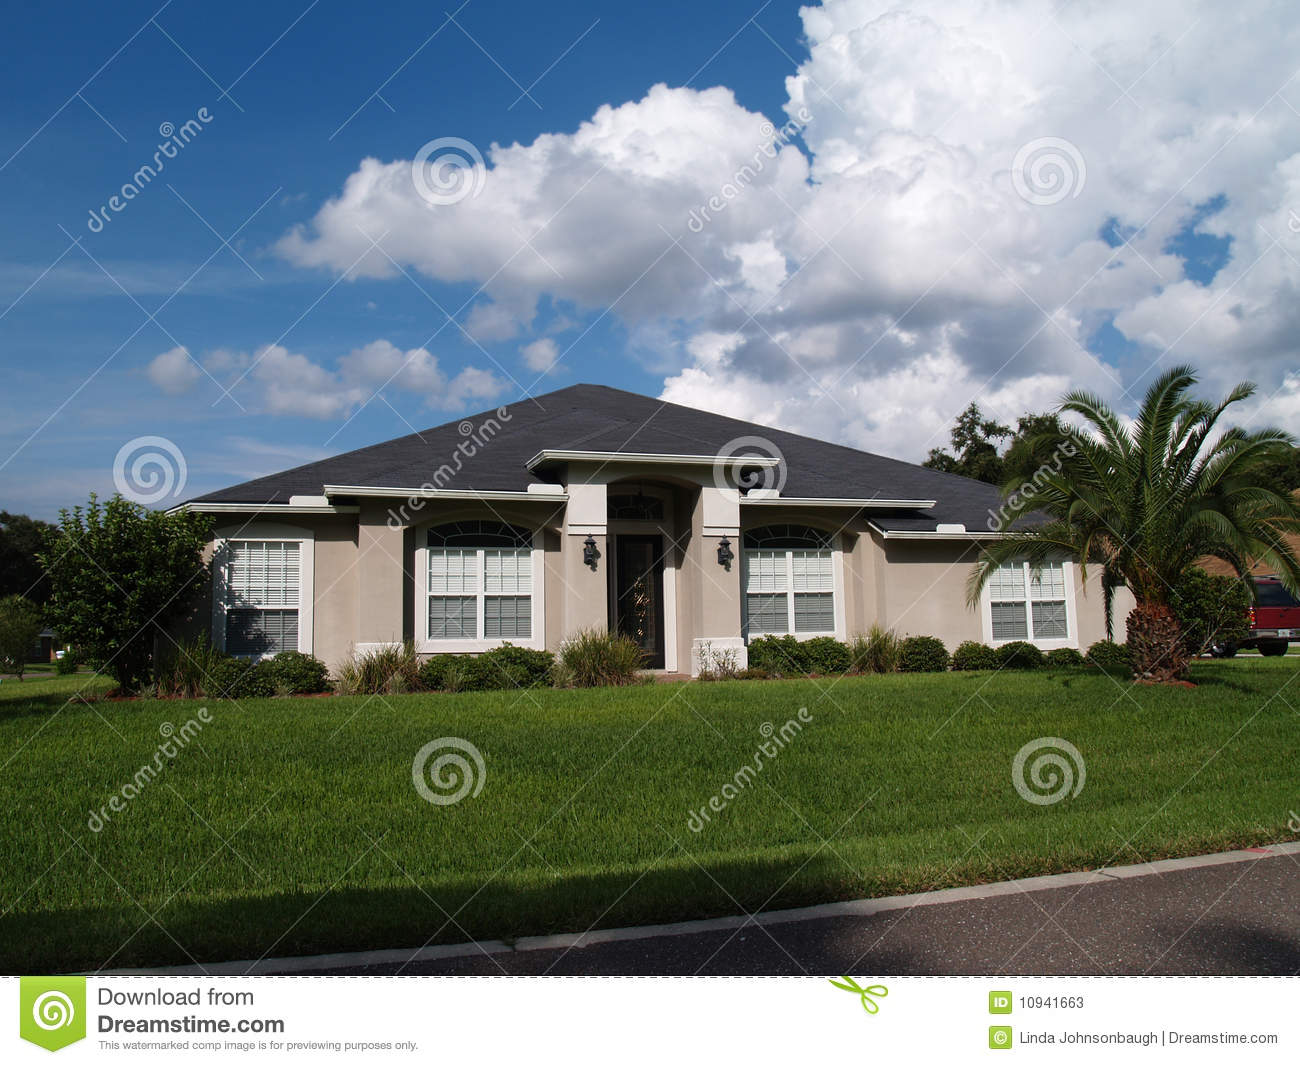 Tom Cruise Set Make Clearwater Home additionally Metal Home Floor Plans Missouri in addition 2012 06 01 archive further 4 Bedroom Mediterranean Floor Plans likewise Ranch Plans Florida. on florida house plans one story